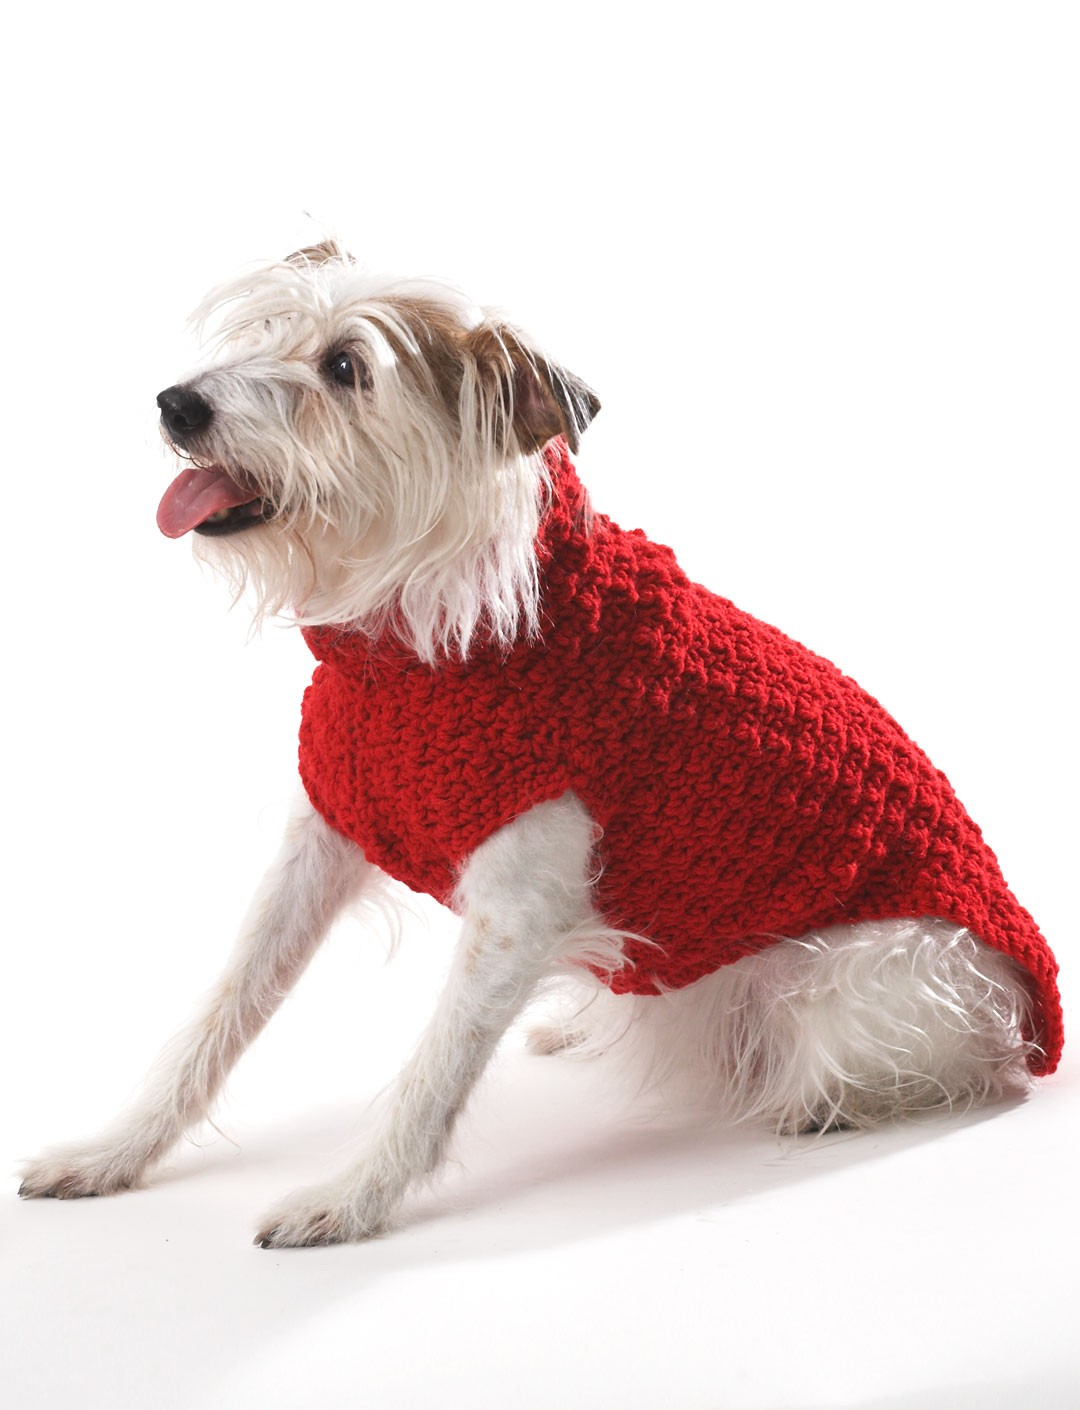 Bernat crochet dog coat crochet pattern yarnspirations crochet dog coat bankloansurffo Gallery